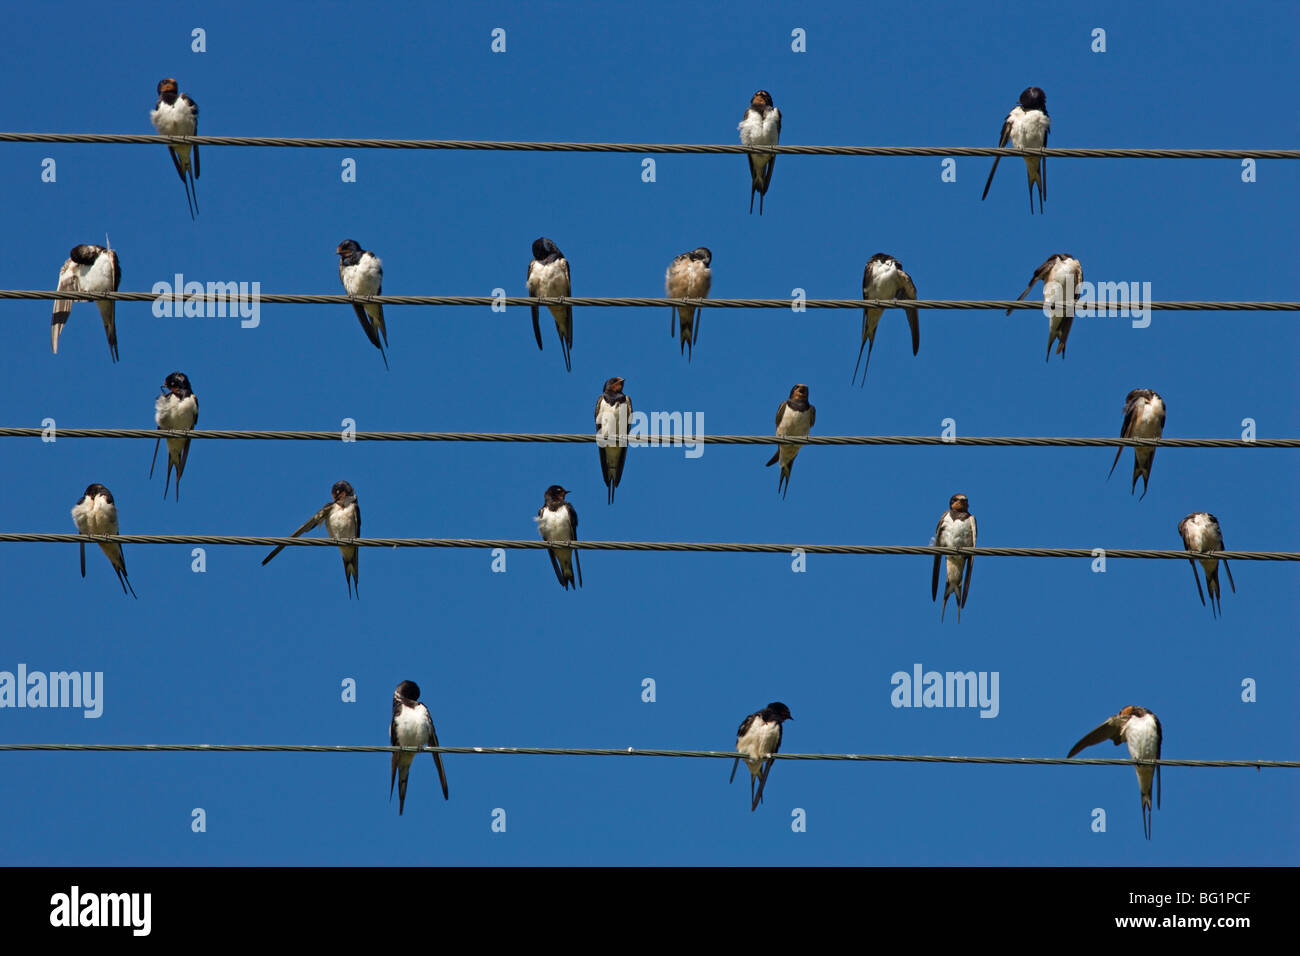 Barn (European) swallow (Hirundo rustica) on wire, Overberg, Western Cape, South Africa, Africa - Stock Image